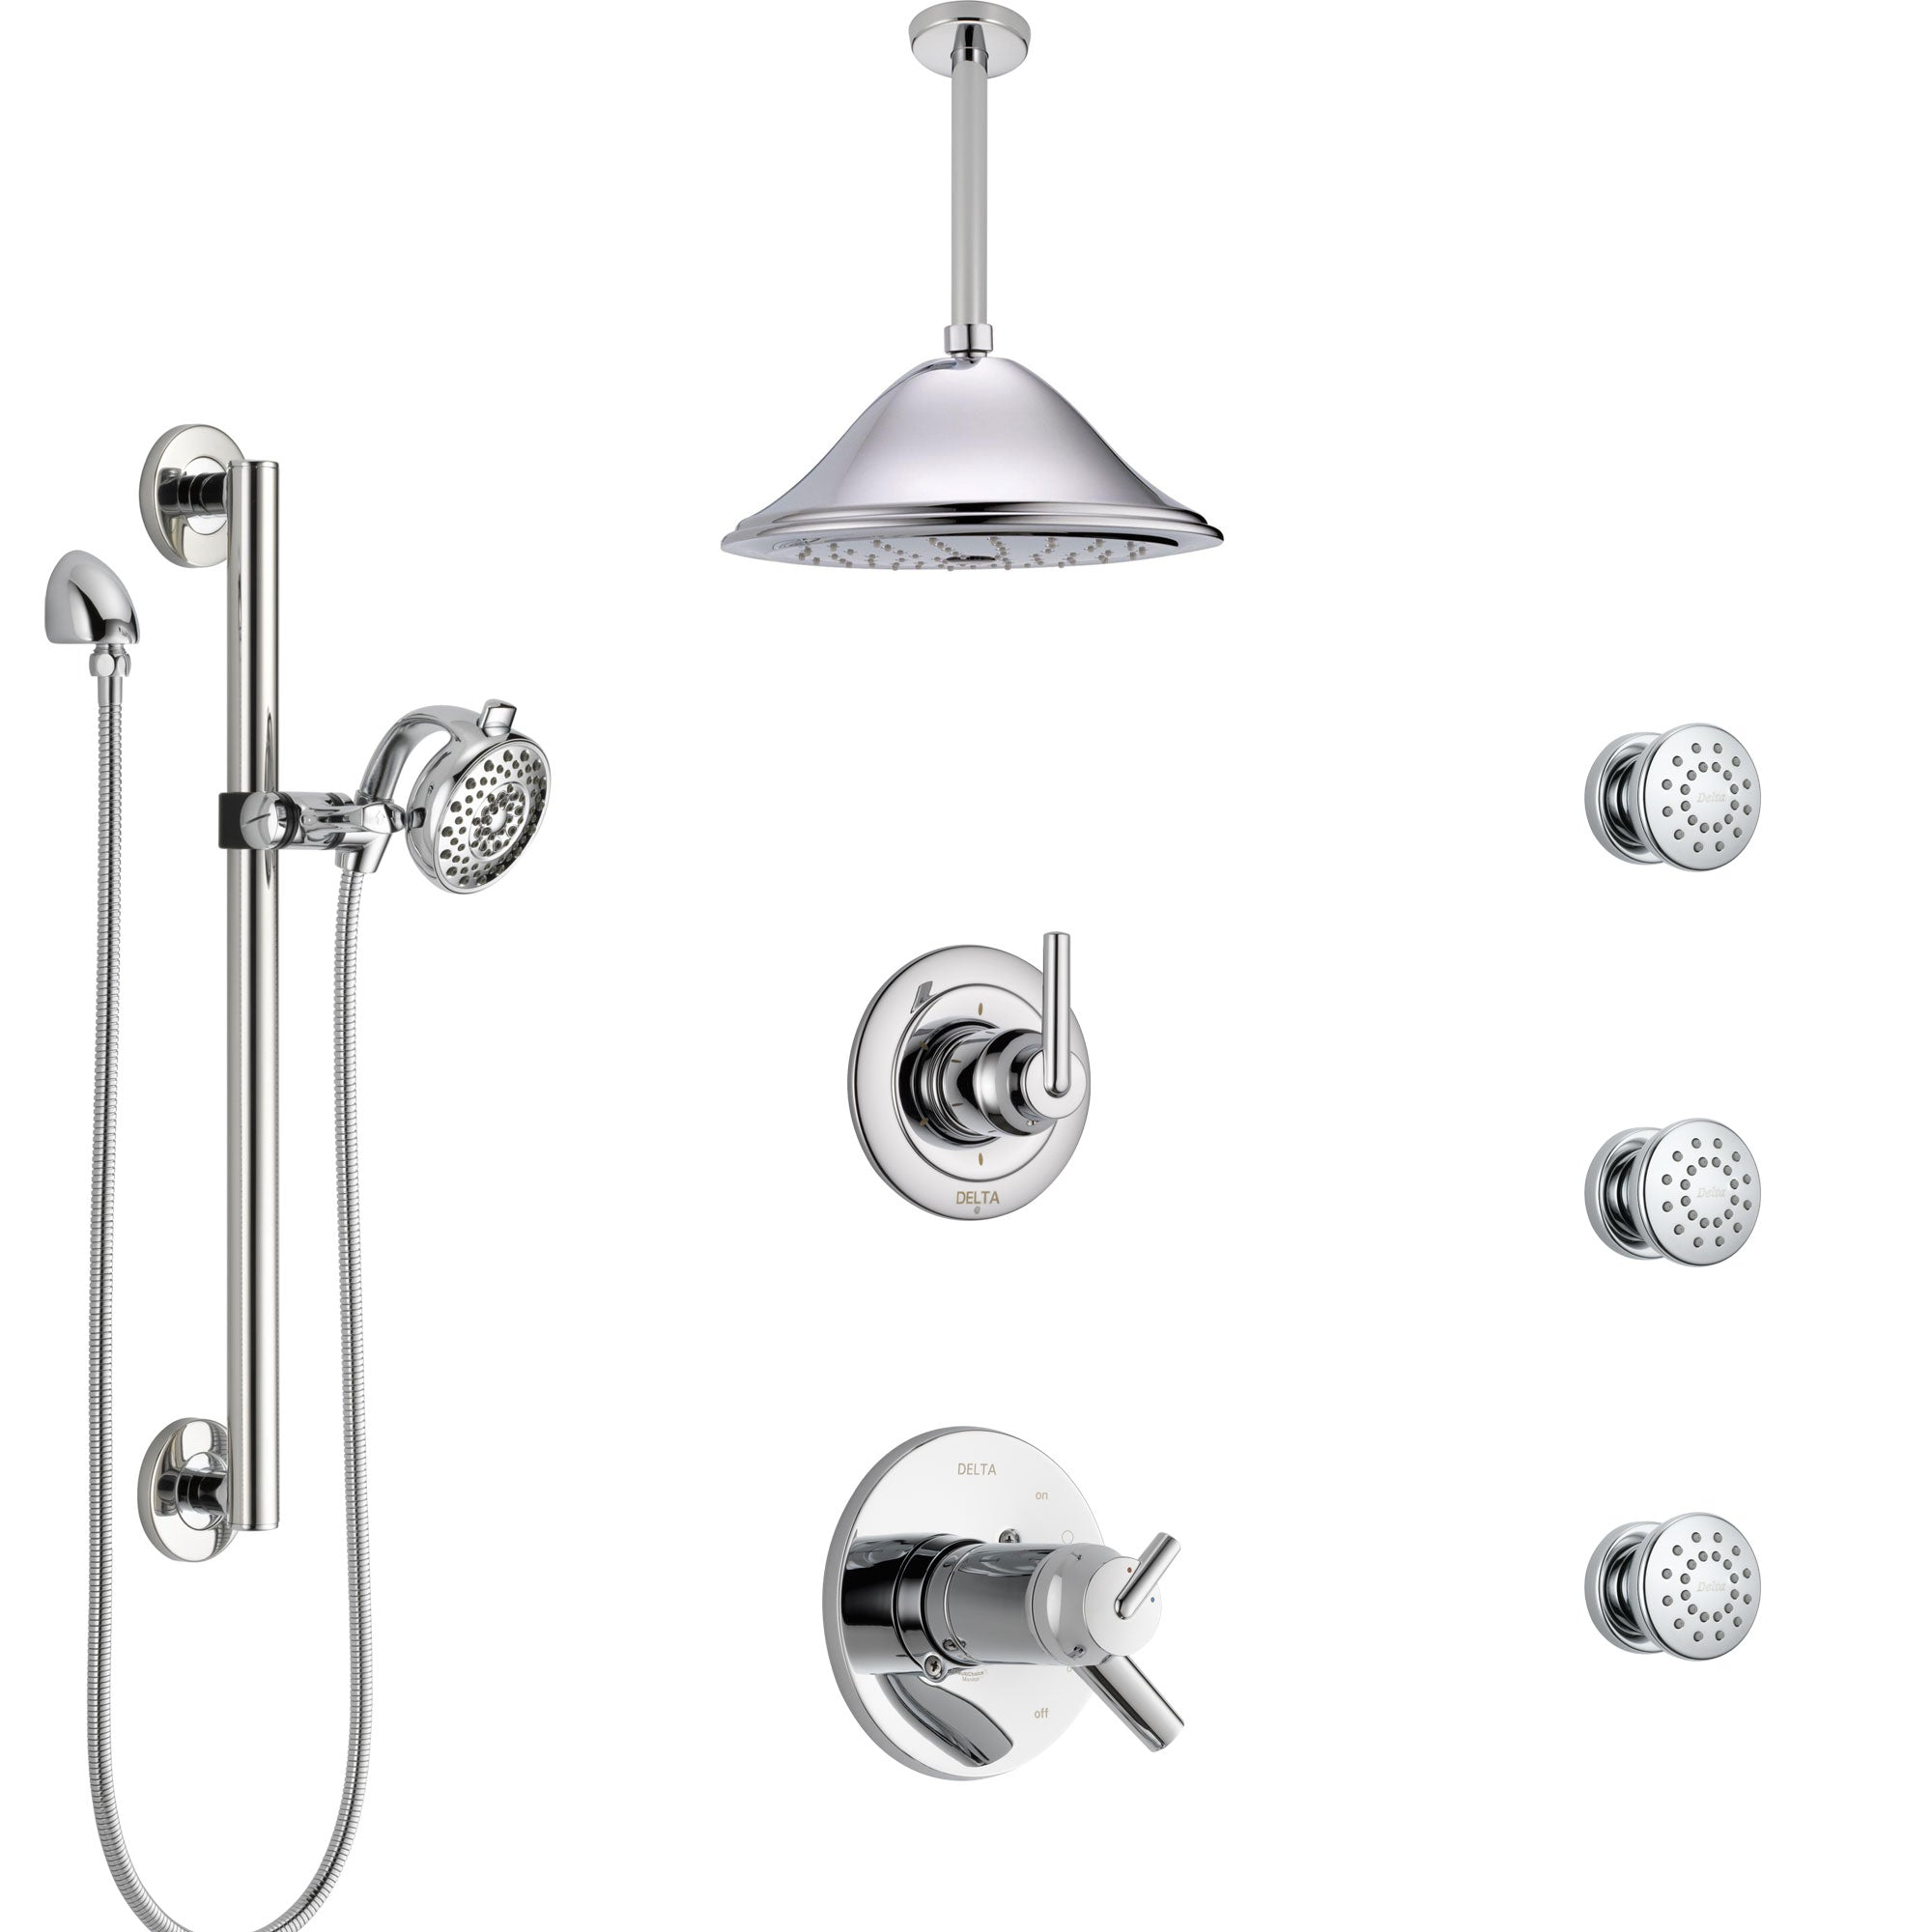 Delta Trinsic Chrome Shower System with Dual Thermostatic Control, Diverter, Ceiling Showerhead, 3 Body Sprays, and Grab Bar Hand Shower SS17T5917